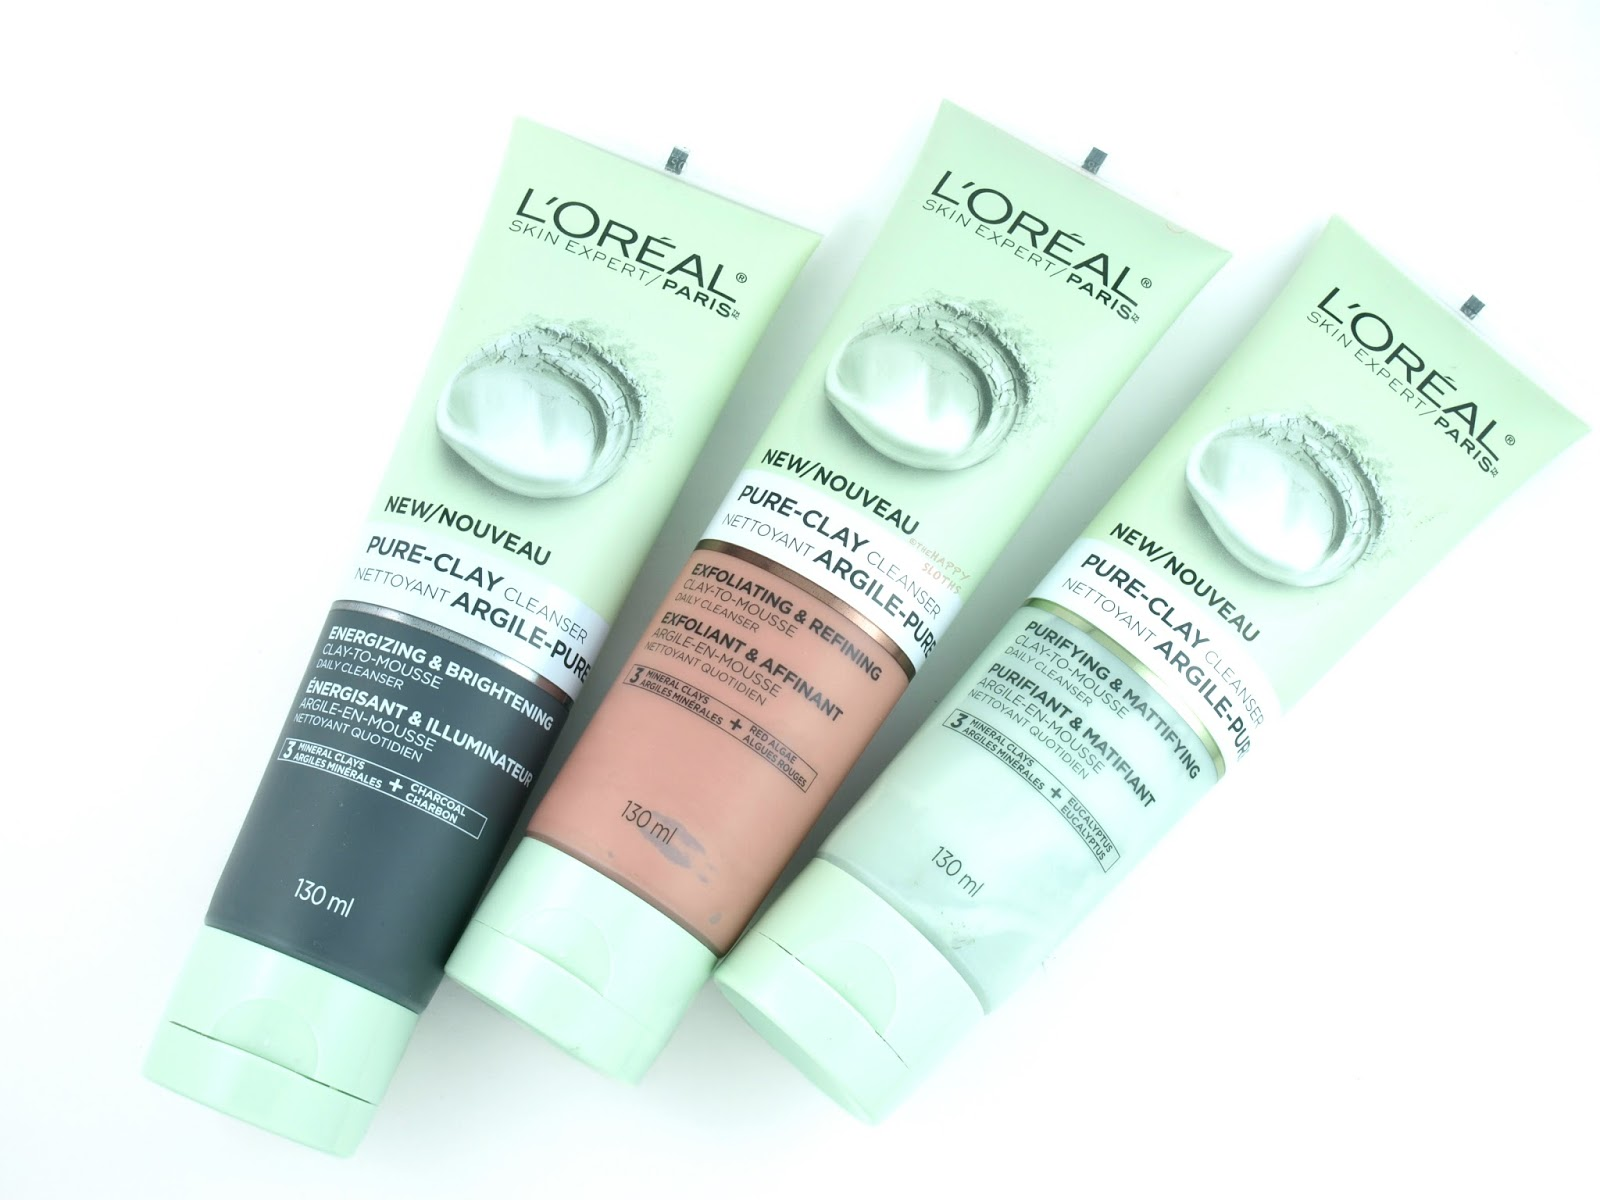 L'Oreal Pure-Clay Cleanser: Review